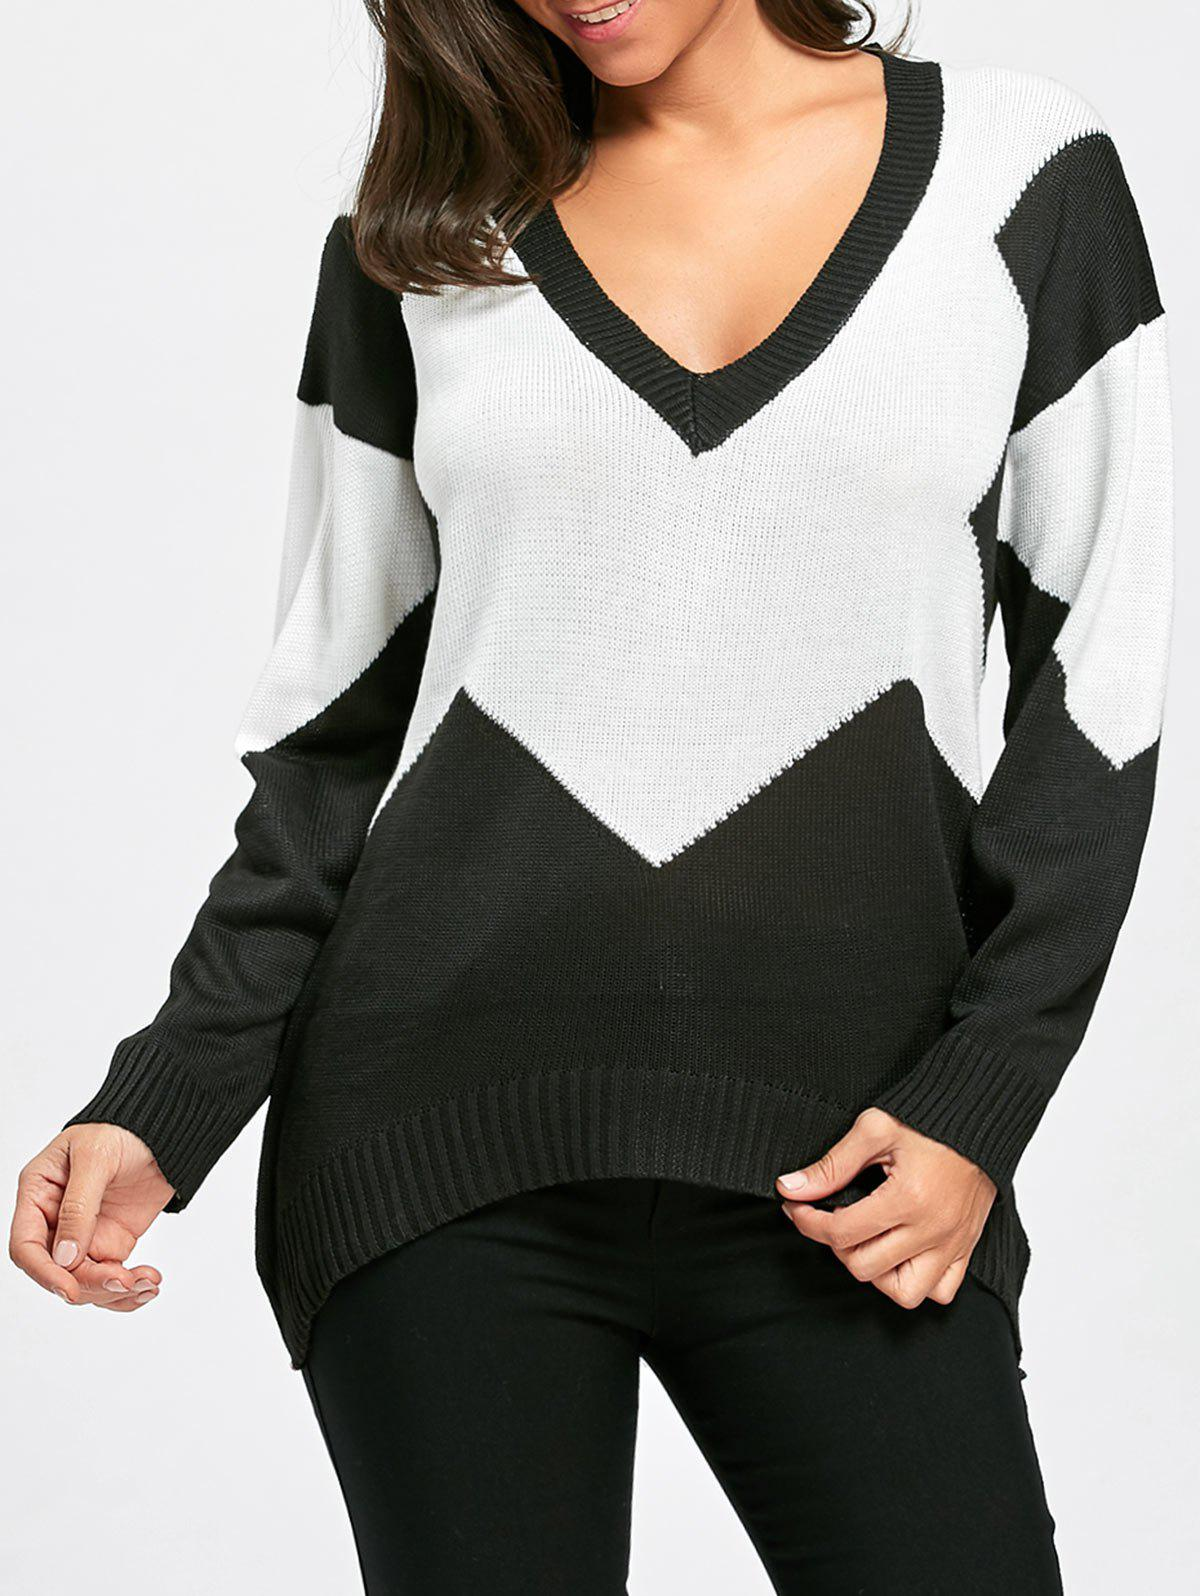 Buy Deep V Neck Two Tone Color Sweater